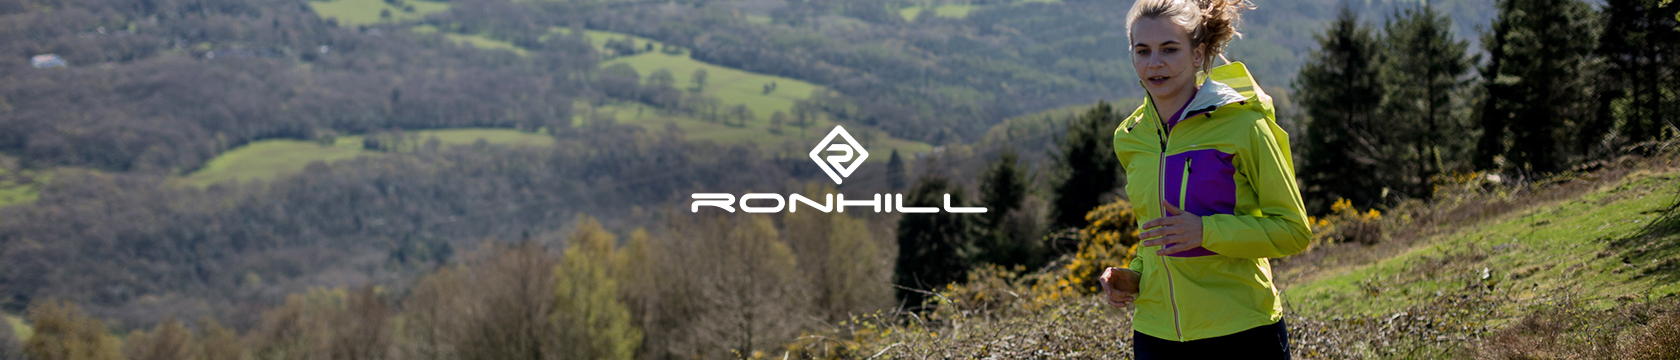 Woman running on hill wearing Ronhill gear.